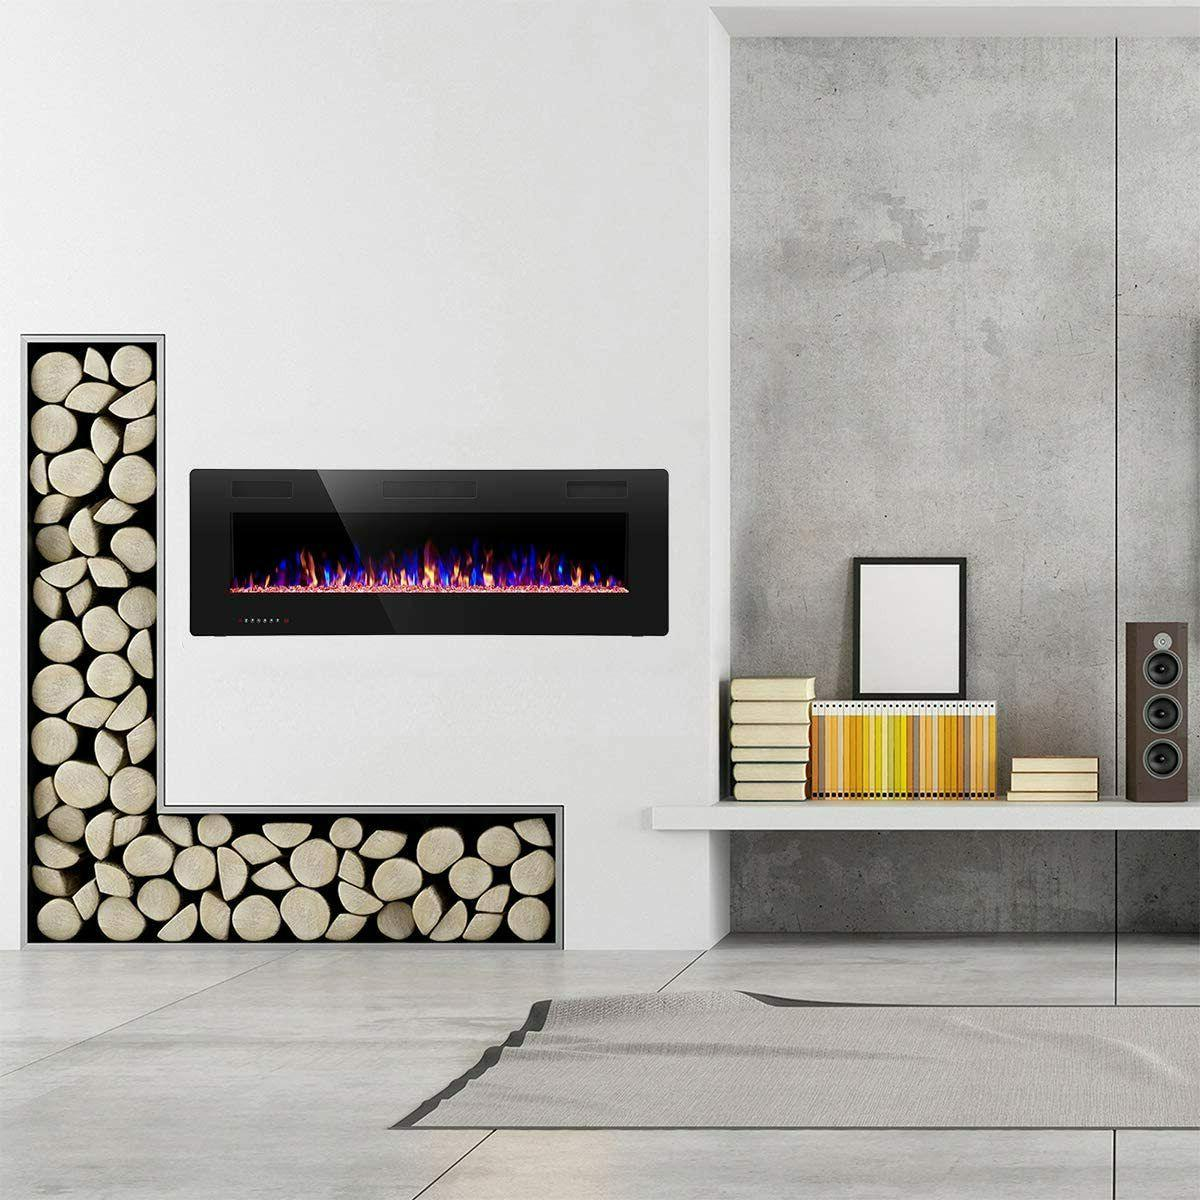 R.W.FLAME Fireplace inch Recessed and Mounted,Thinnest